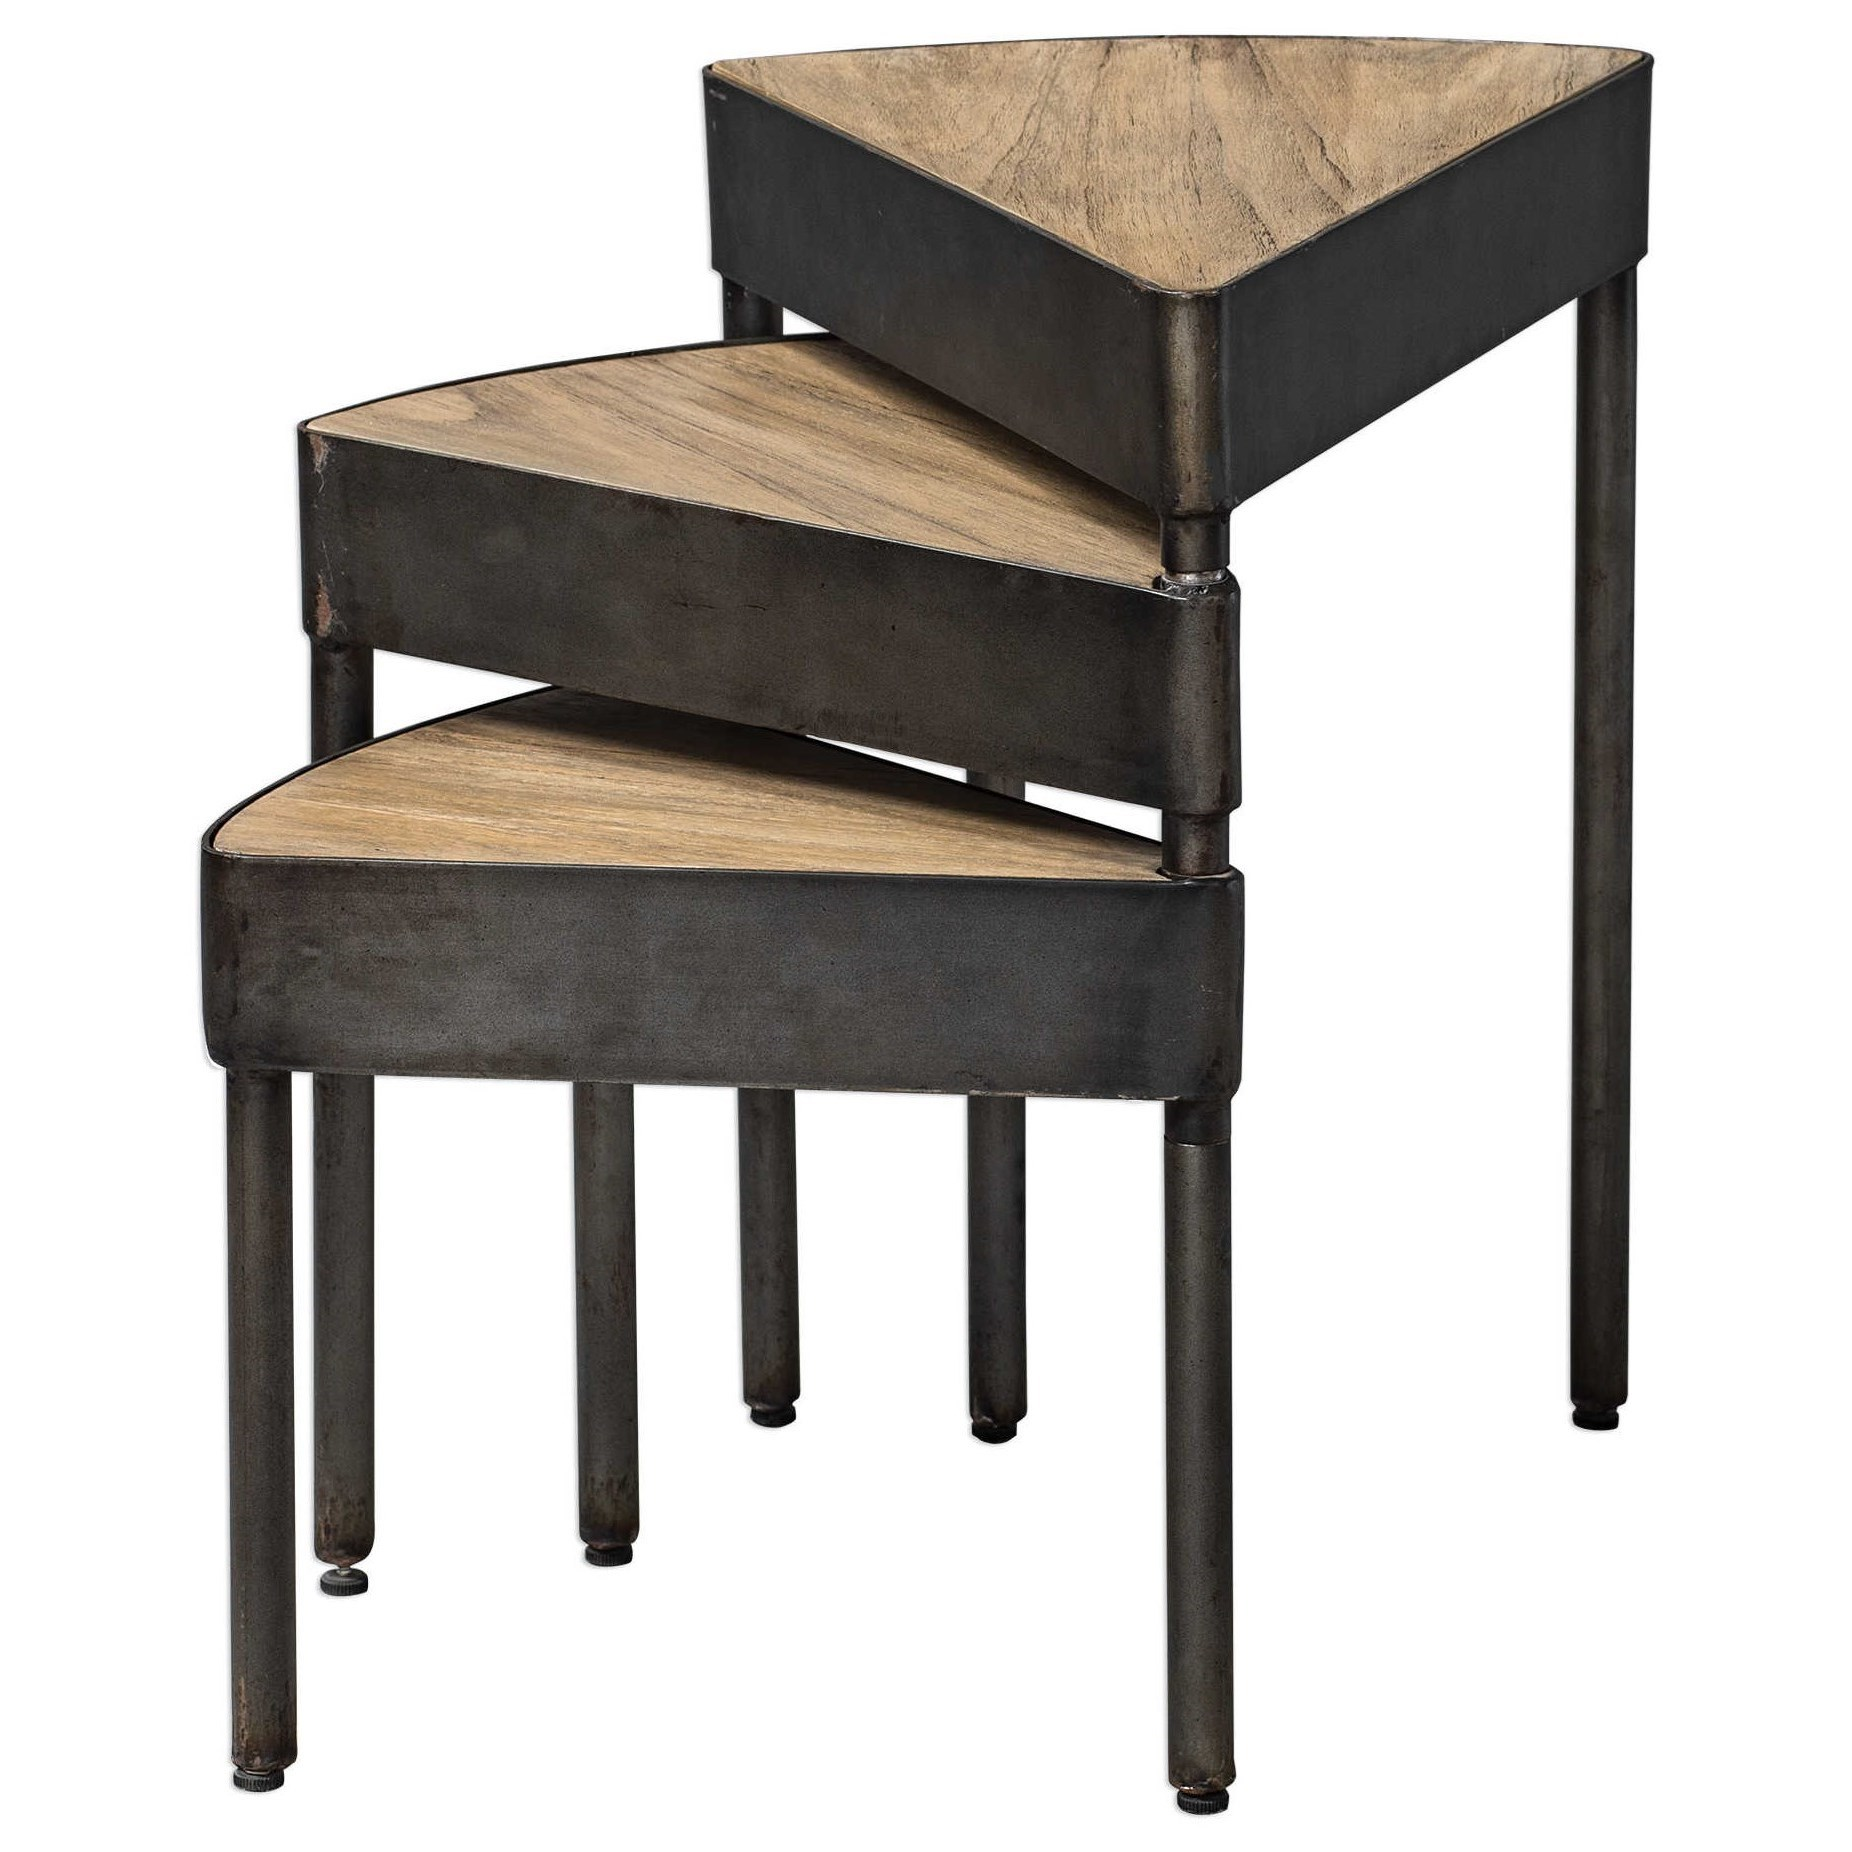 Accent Furniture - Occasional Tables Akito Nesting Table by Uttermost at Reid's Furniture